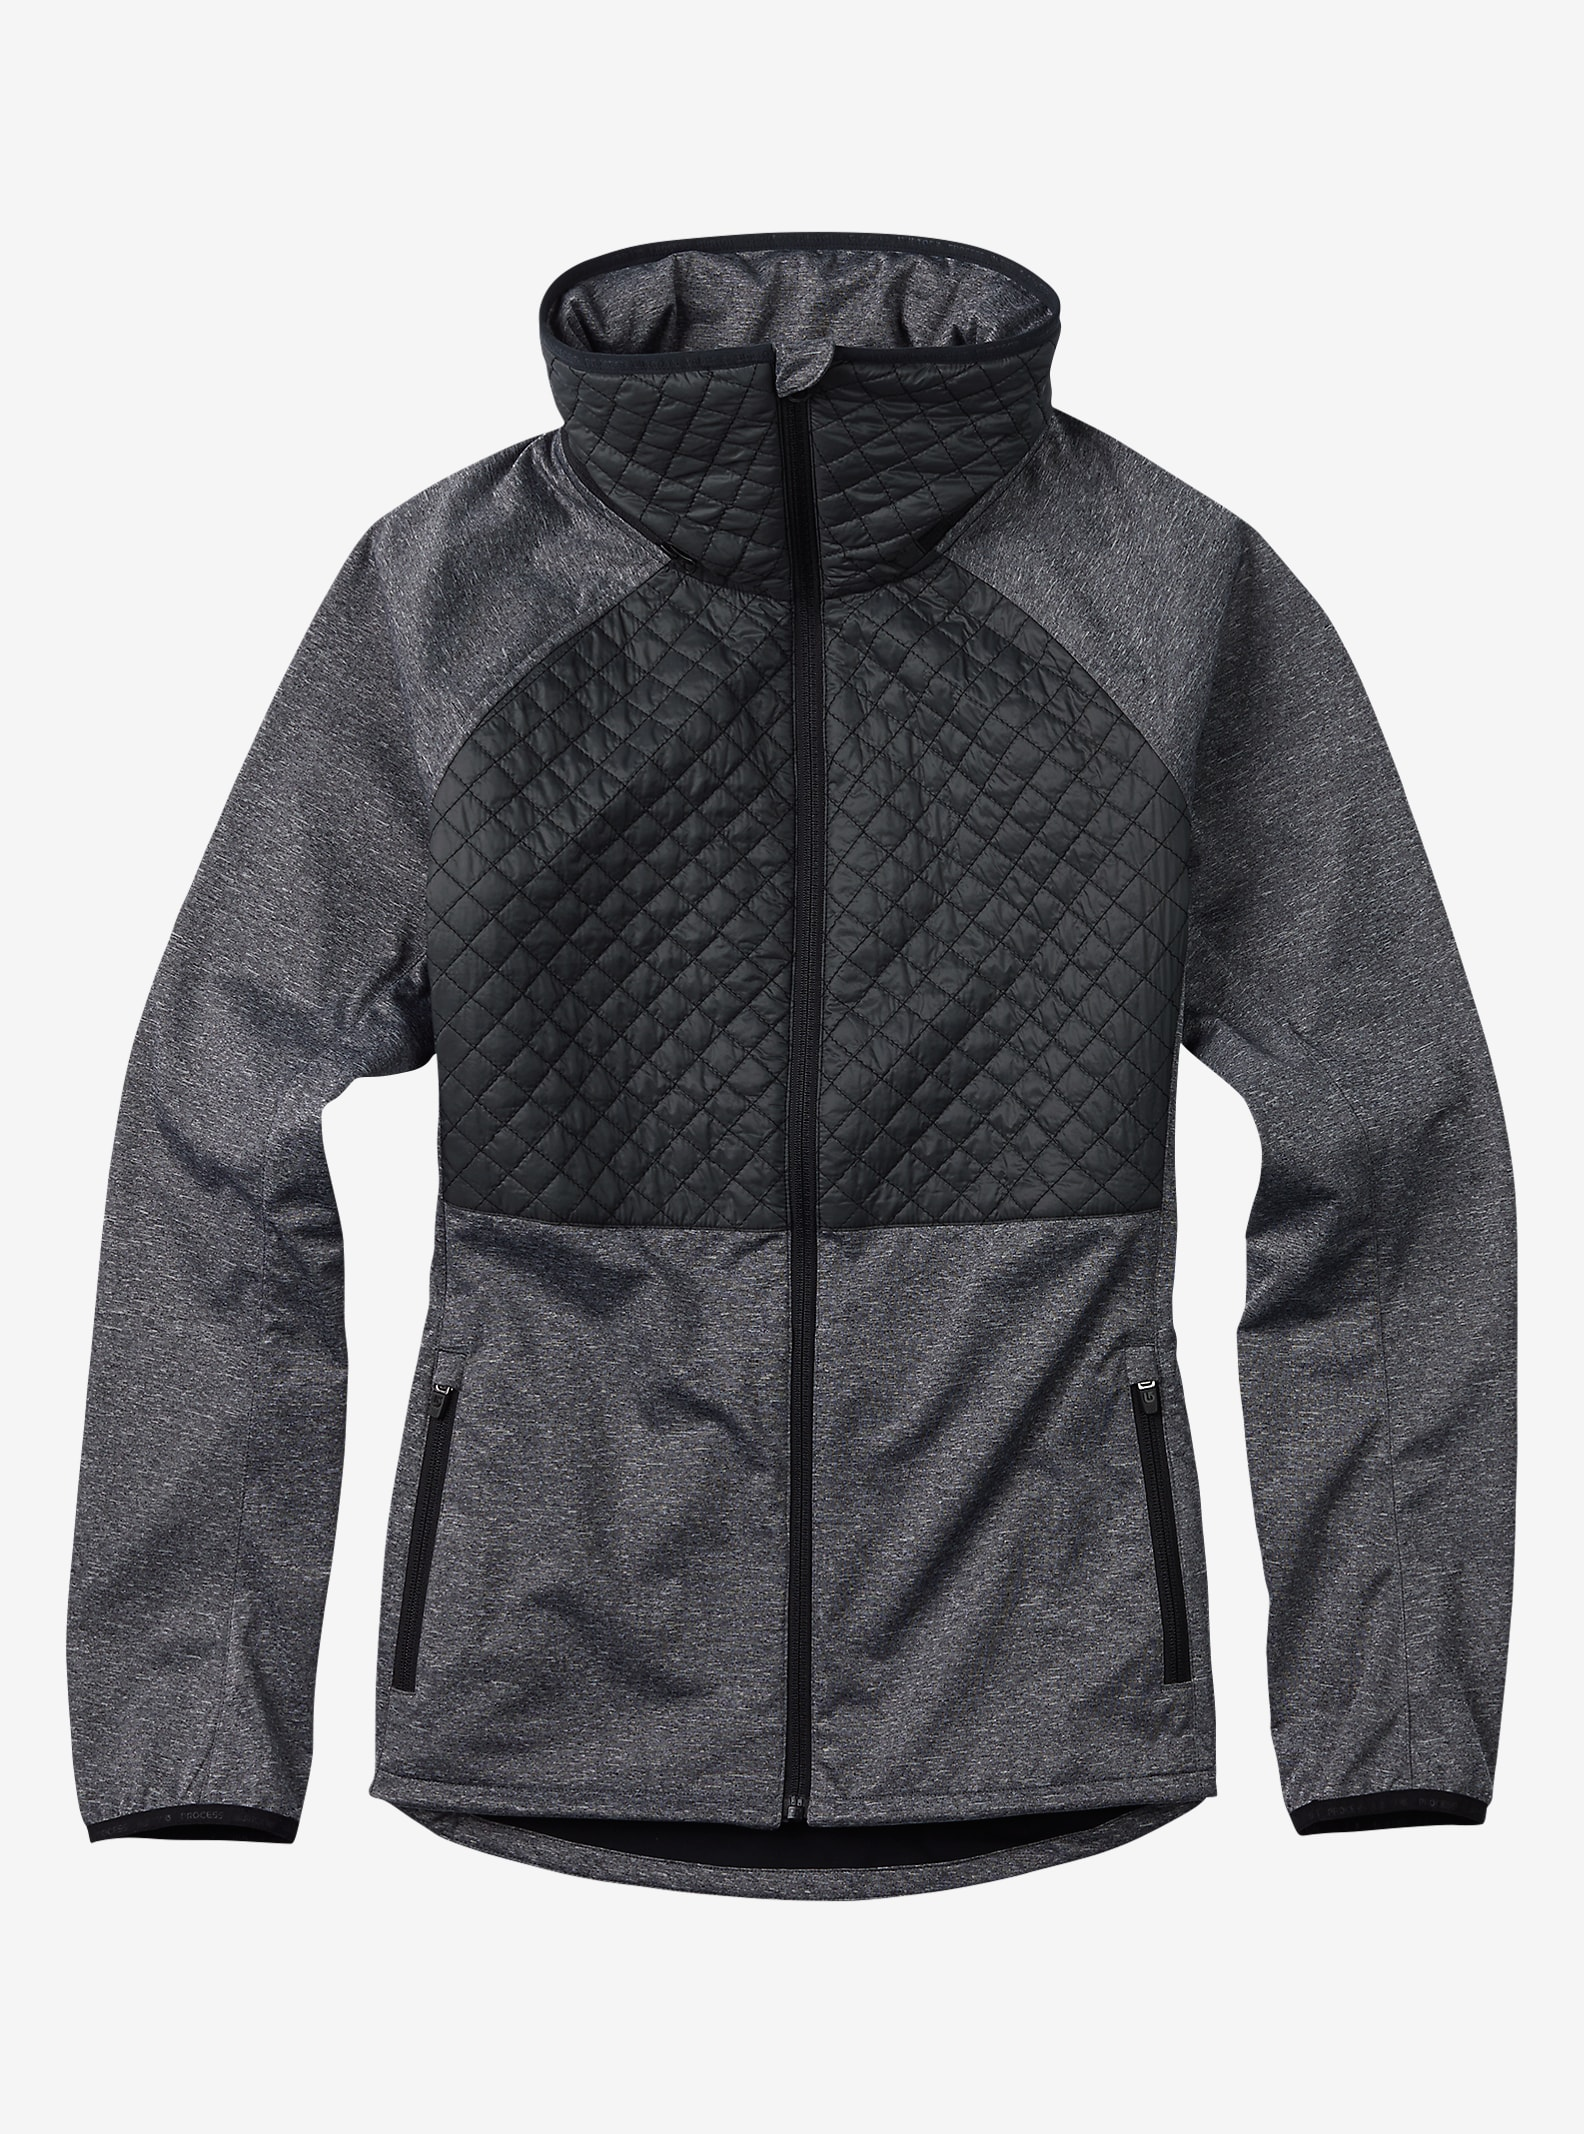 Burton Concept Softshell shown in True Black Heather